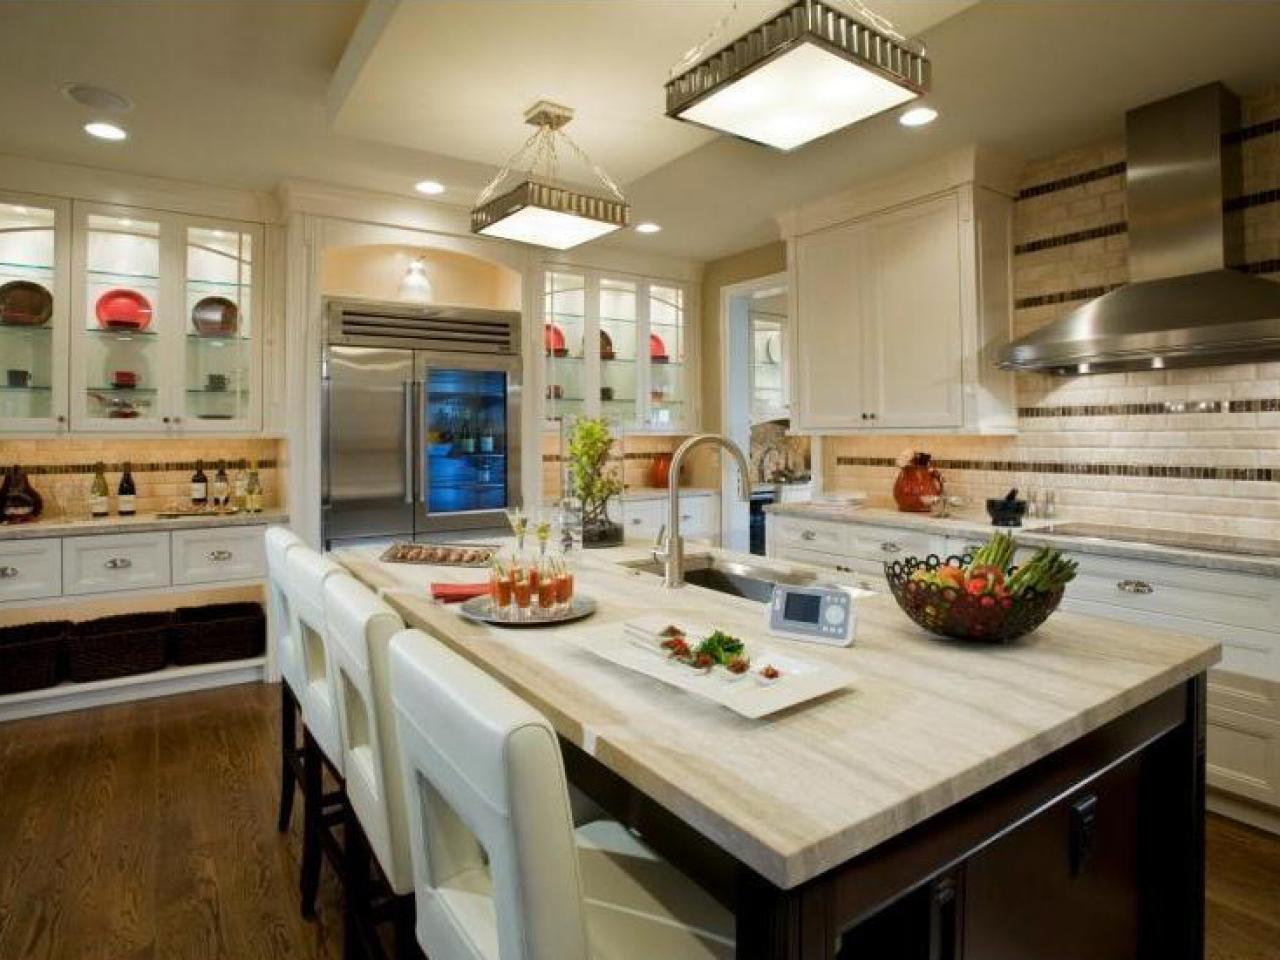 Kitchen Counter Ideas refinish kitchen countertops: pictures & ideas from hgtv | hgtv